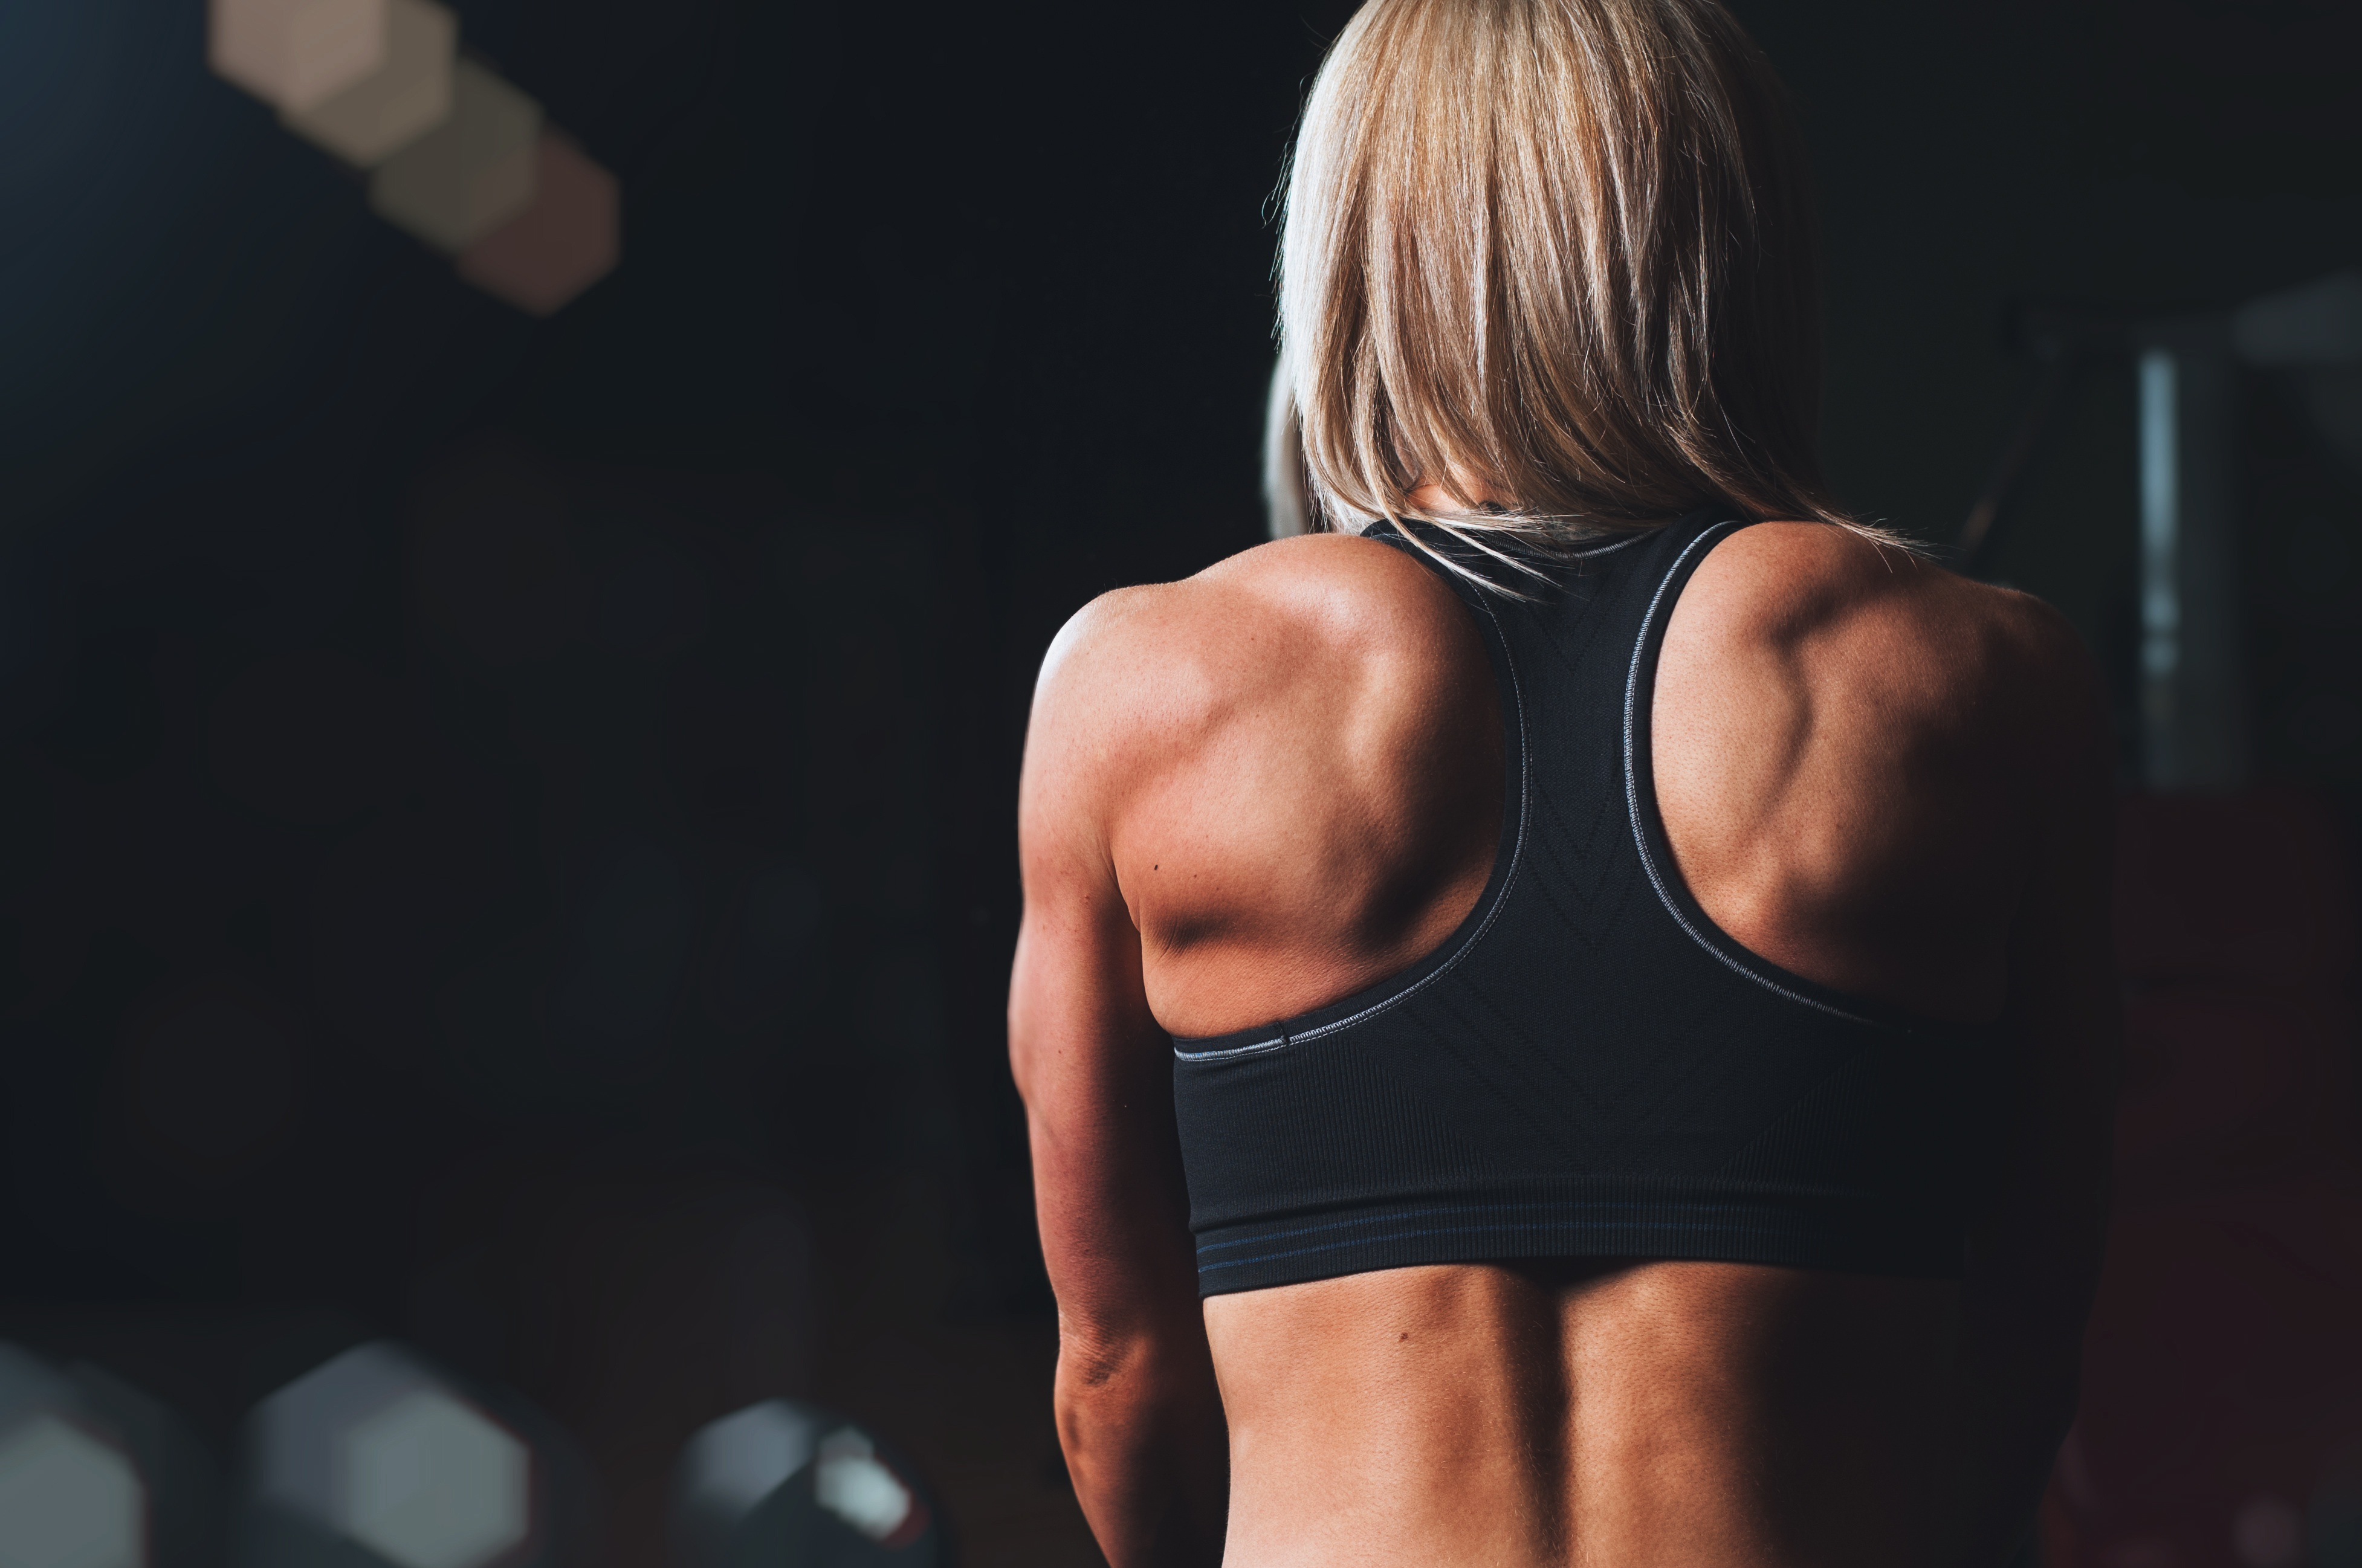 free fitness photos  Free stock photos of fitness · Pexels